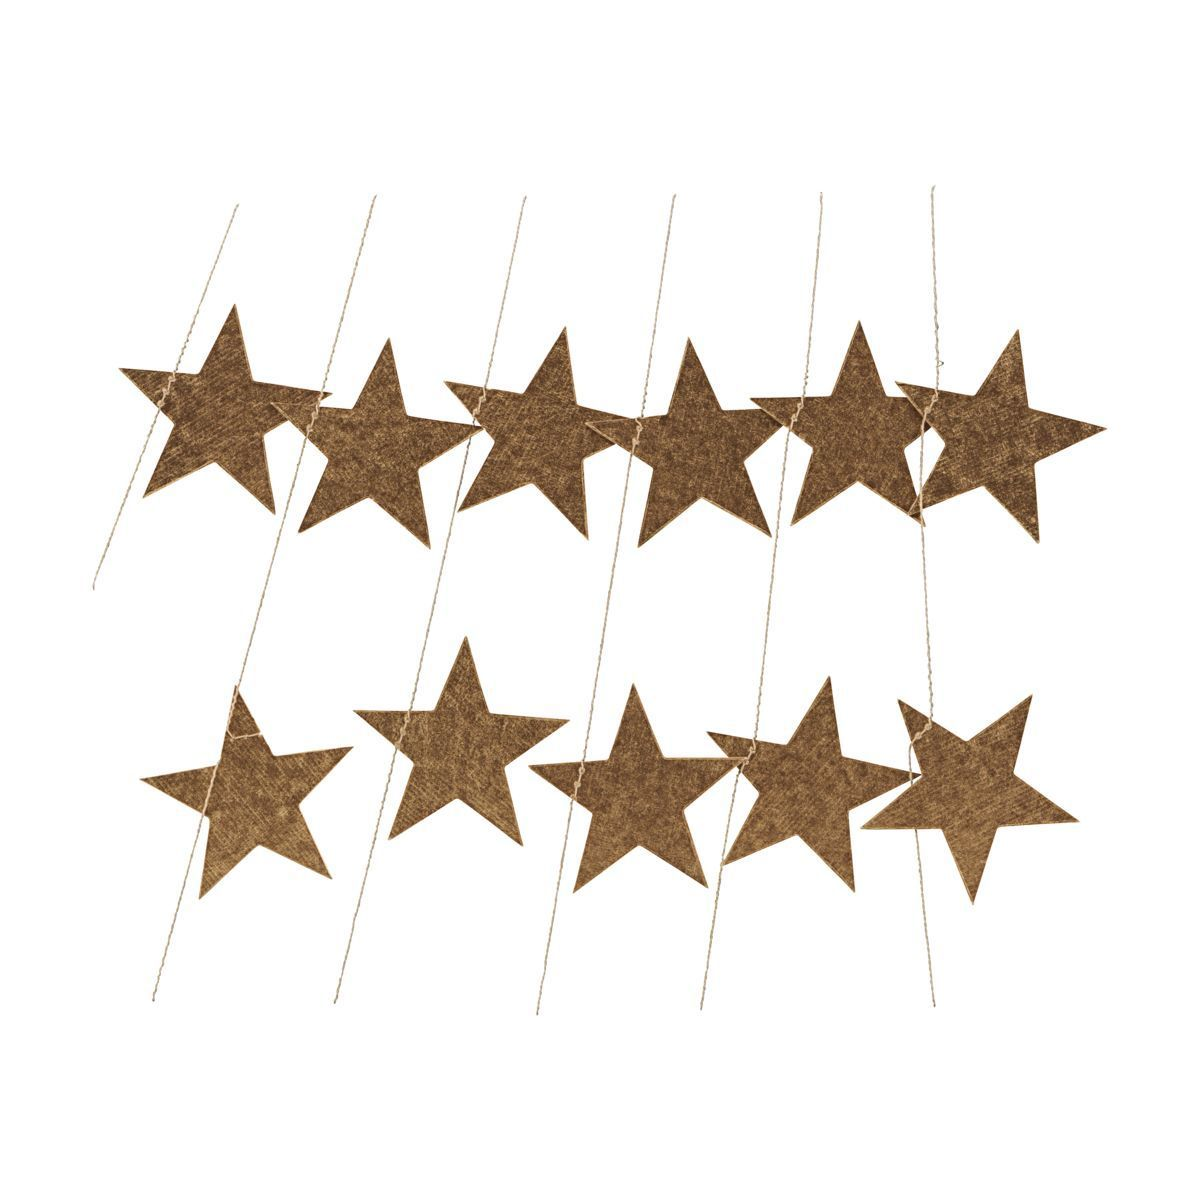 Gold Paper Star Garland (With images) | Star garland ...